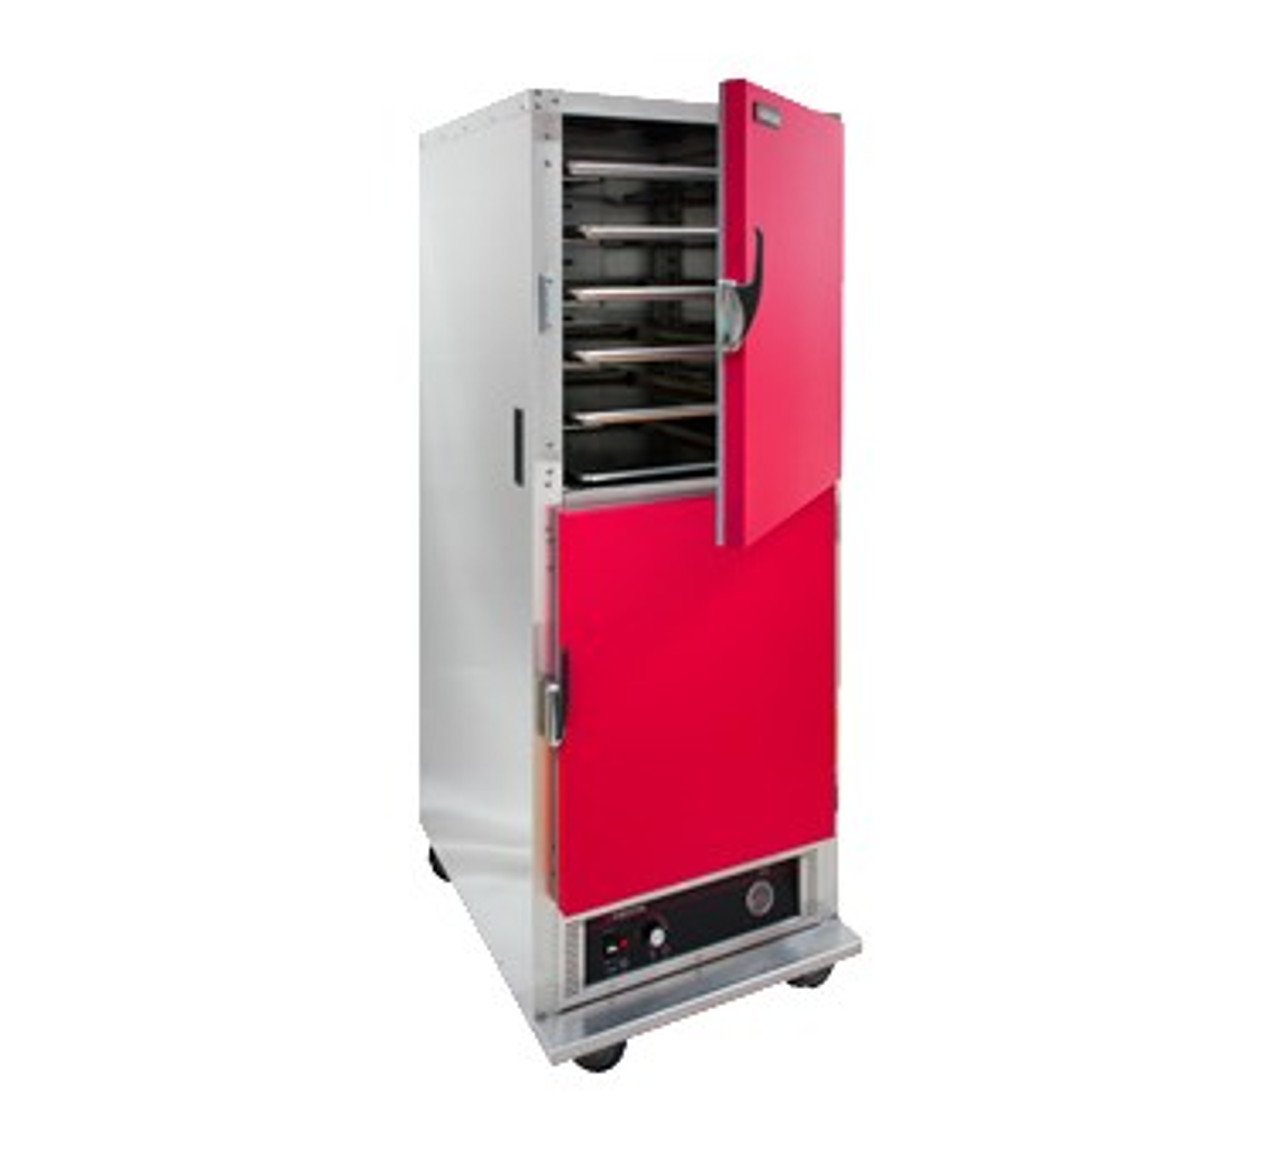 """Cabinet, Mobile Heated, one compartment, insulated, bottom-mount heater assembly, field reversible red dutch doors, recessed push/pull handles, magnetic latch, (11) sets chrome plated wire, 4-1/2"""" centers, adjustable 1-1/2"""" centers, analog thermometer, anti-microbial latches, (4) 5"""" swivel casters (2) braked, stainless steel construction, cCSAus, CSA-Sanitation"""